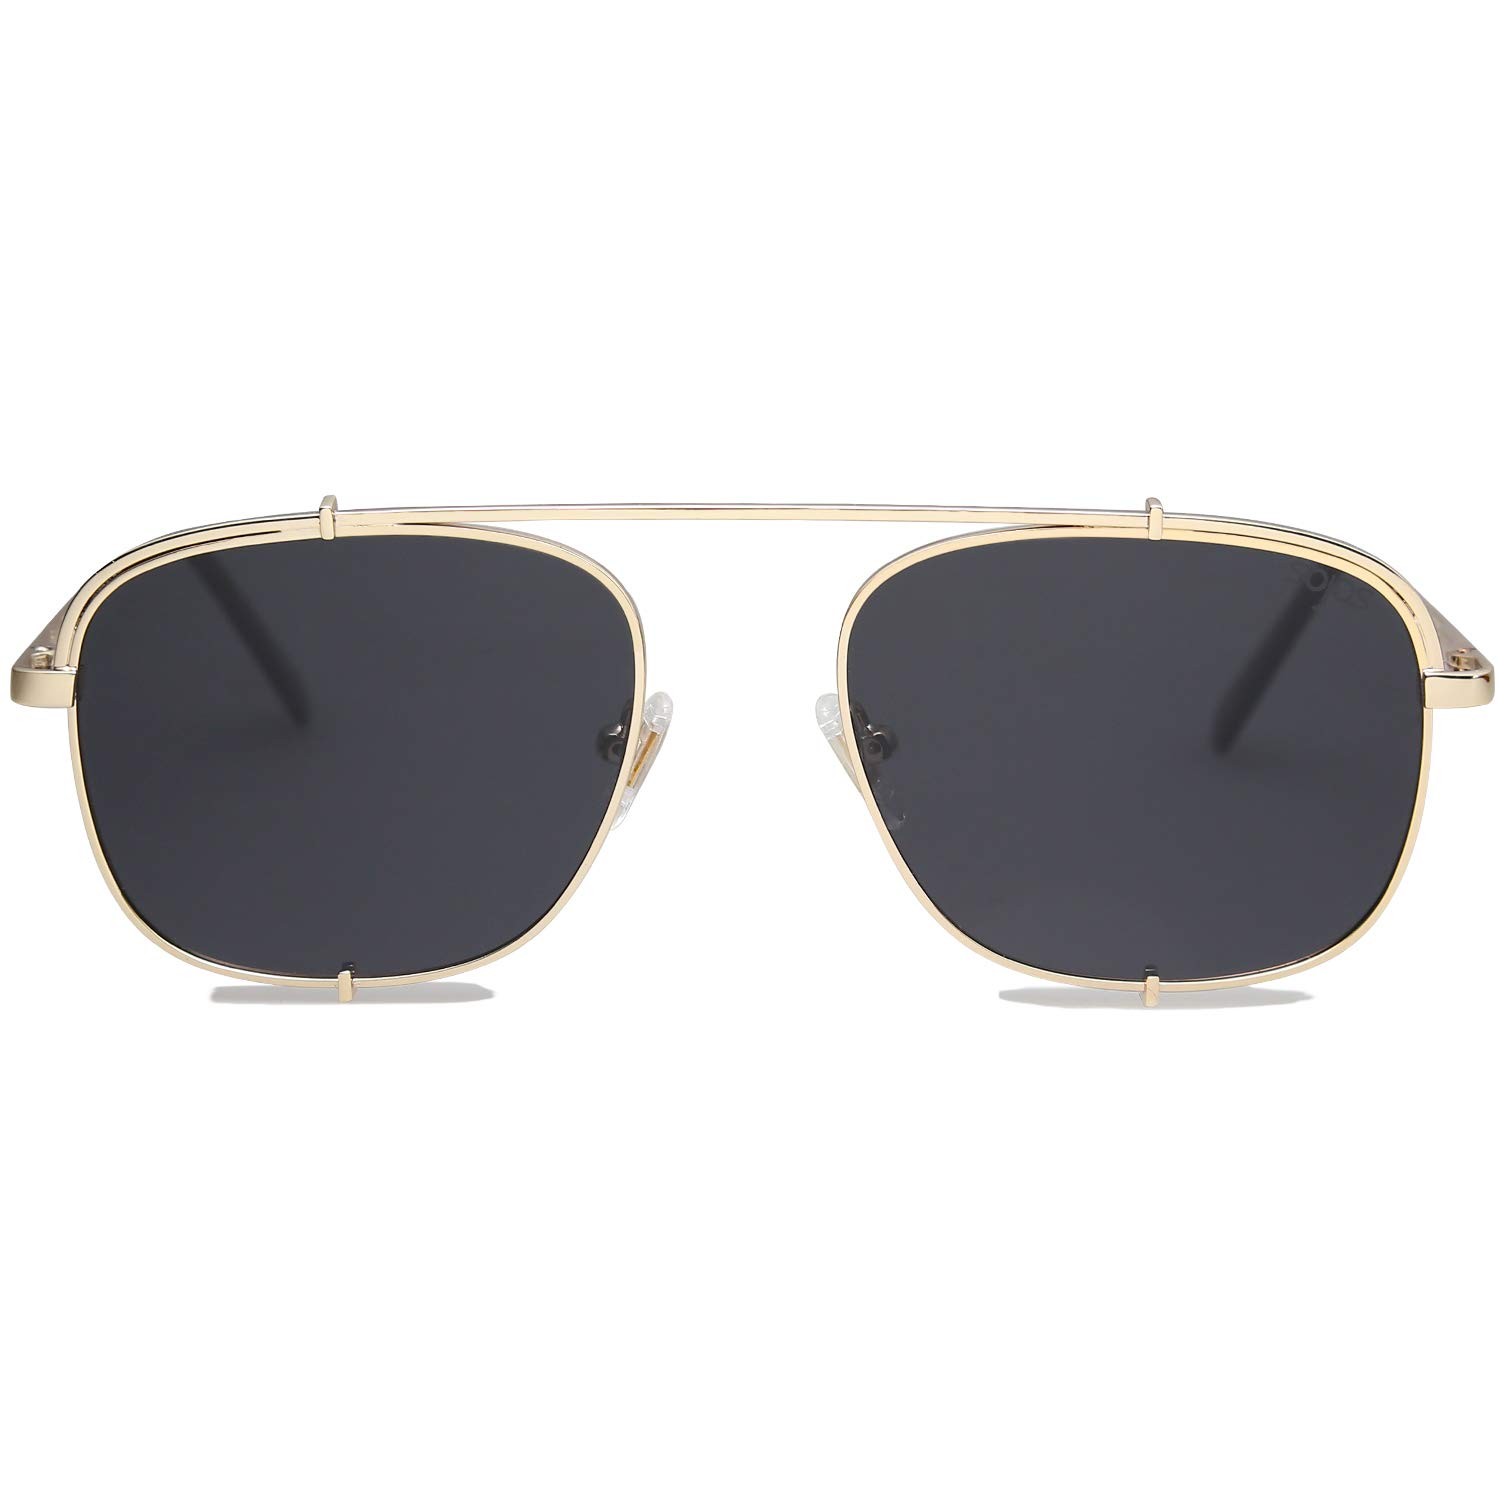 SOJOS Small Square Polarized Sunglasses with Spring Hinges Mirrored Lens SUNRAYS SJ1103 with Gold Frame/Grey Polarized Lens by SOJOS